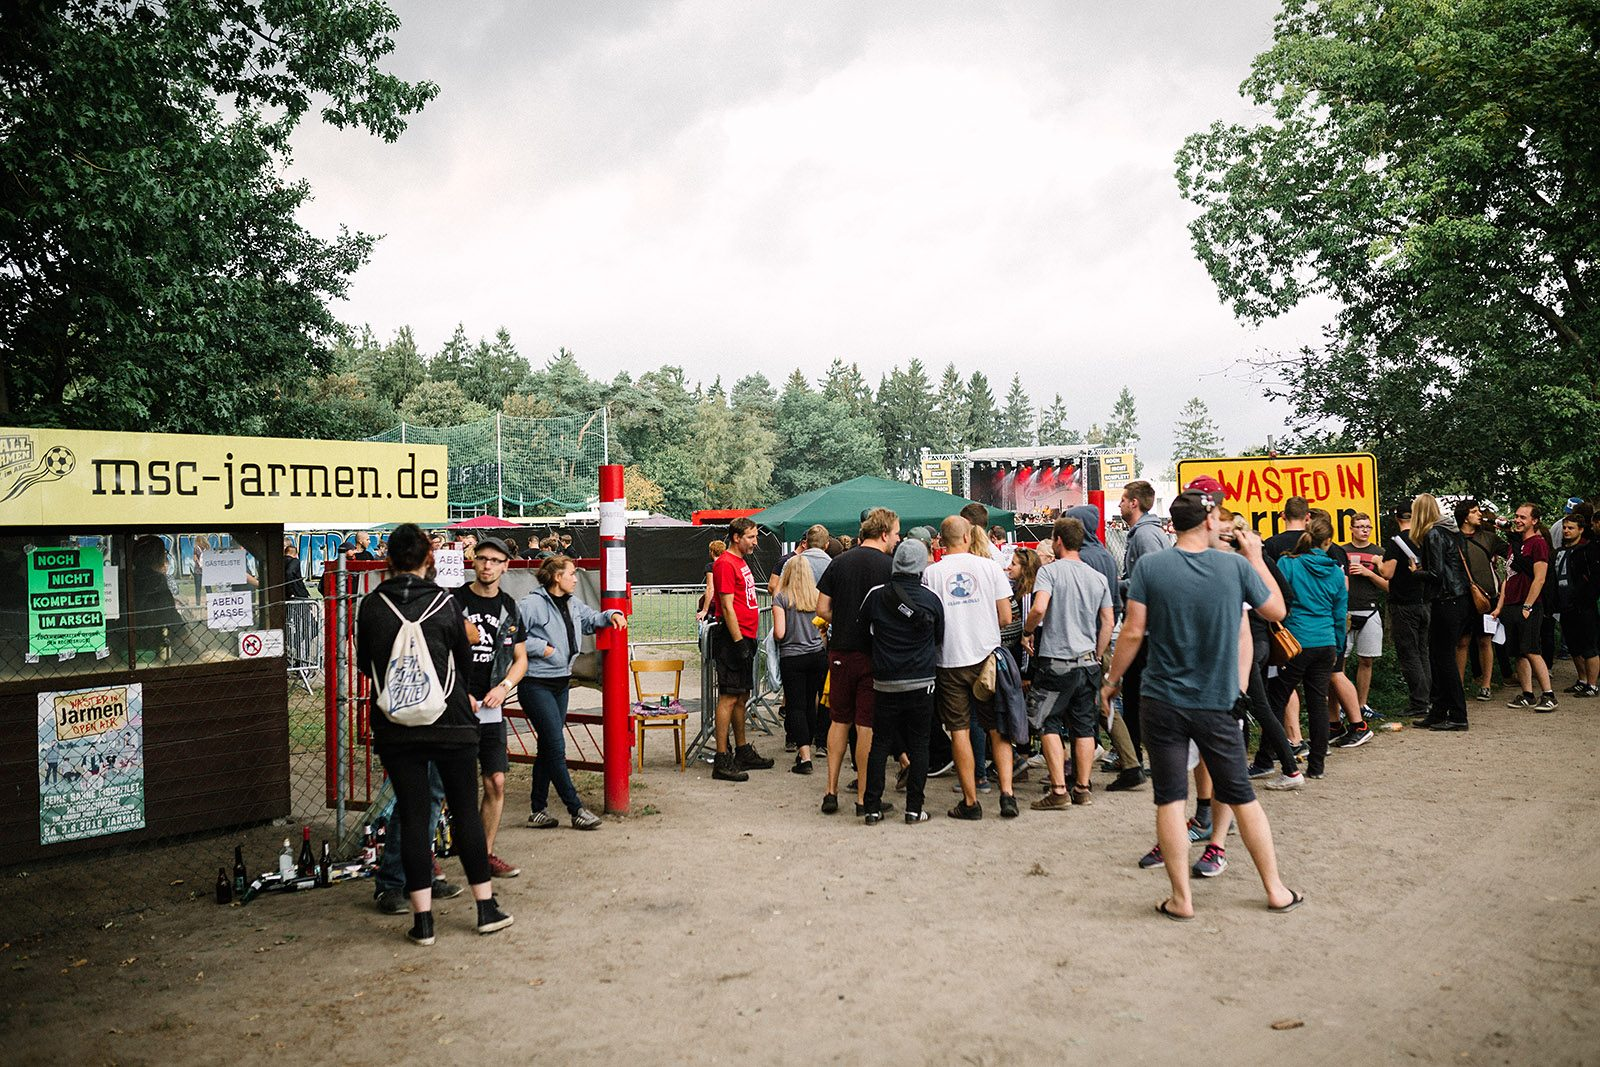 Wasted in Jarmen open air